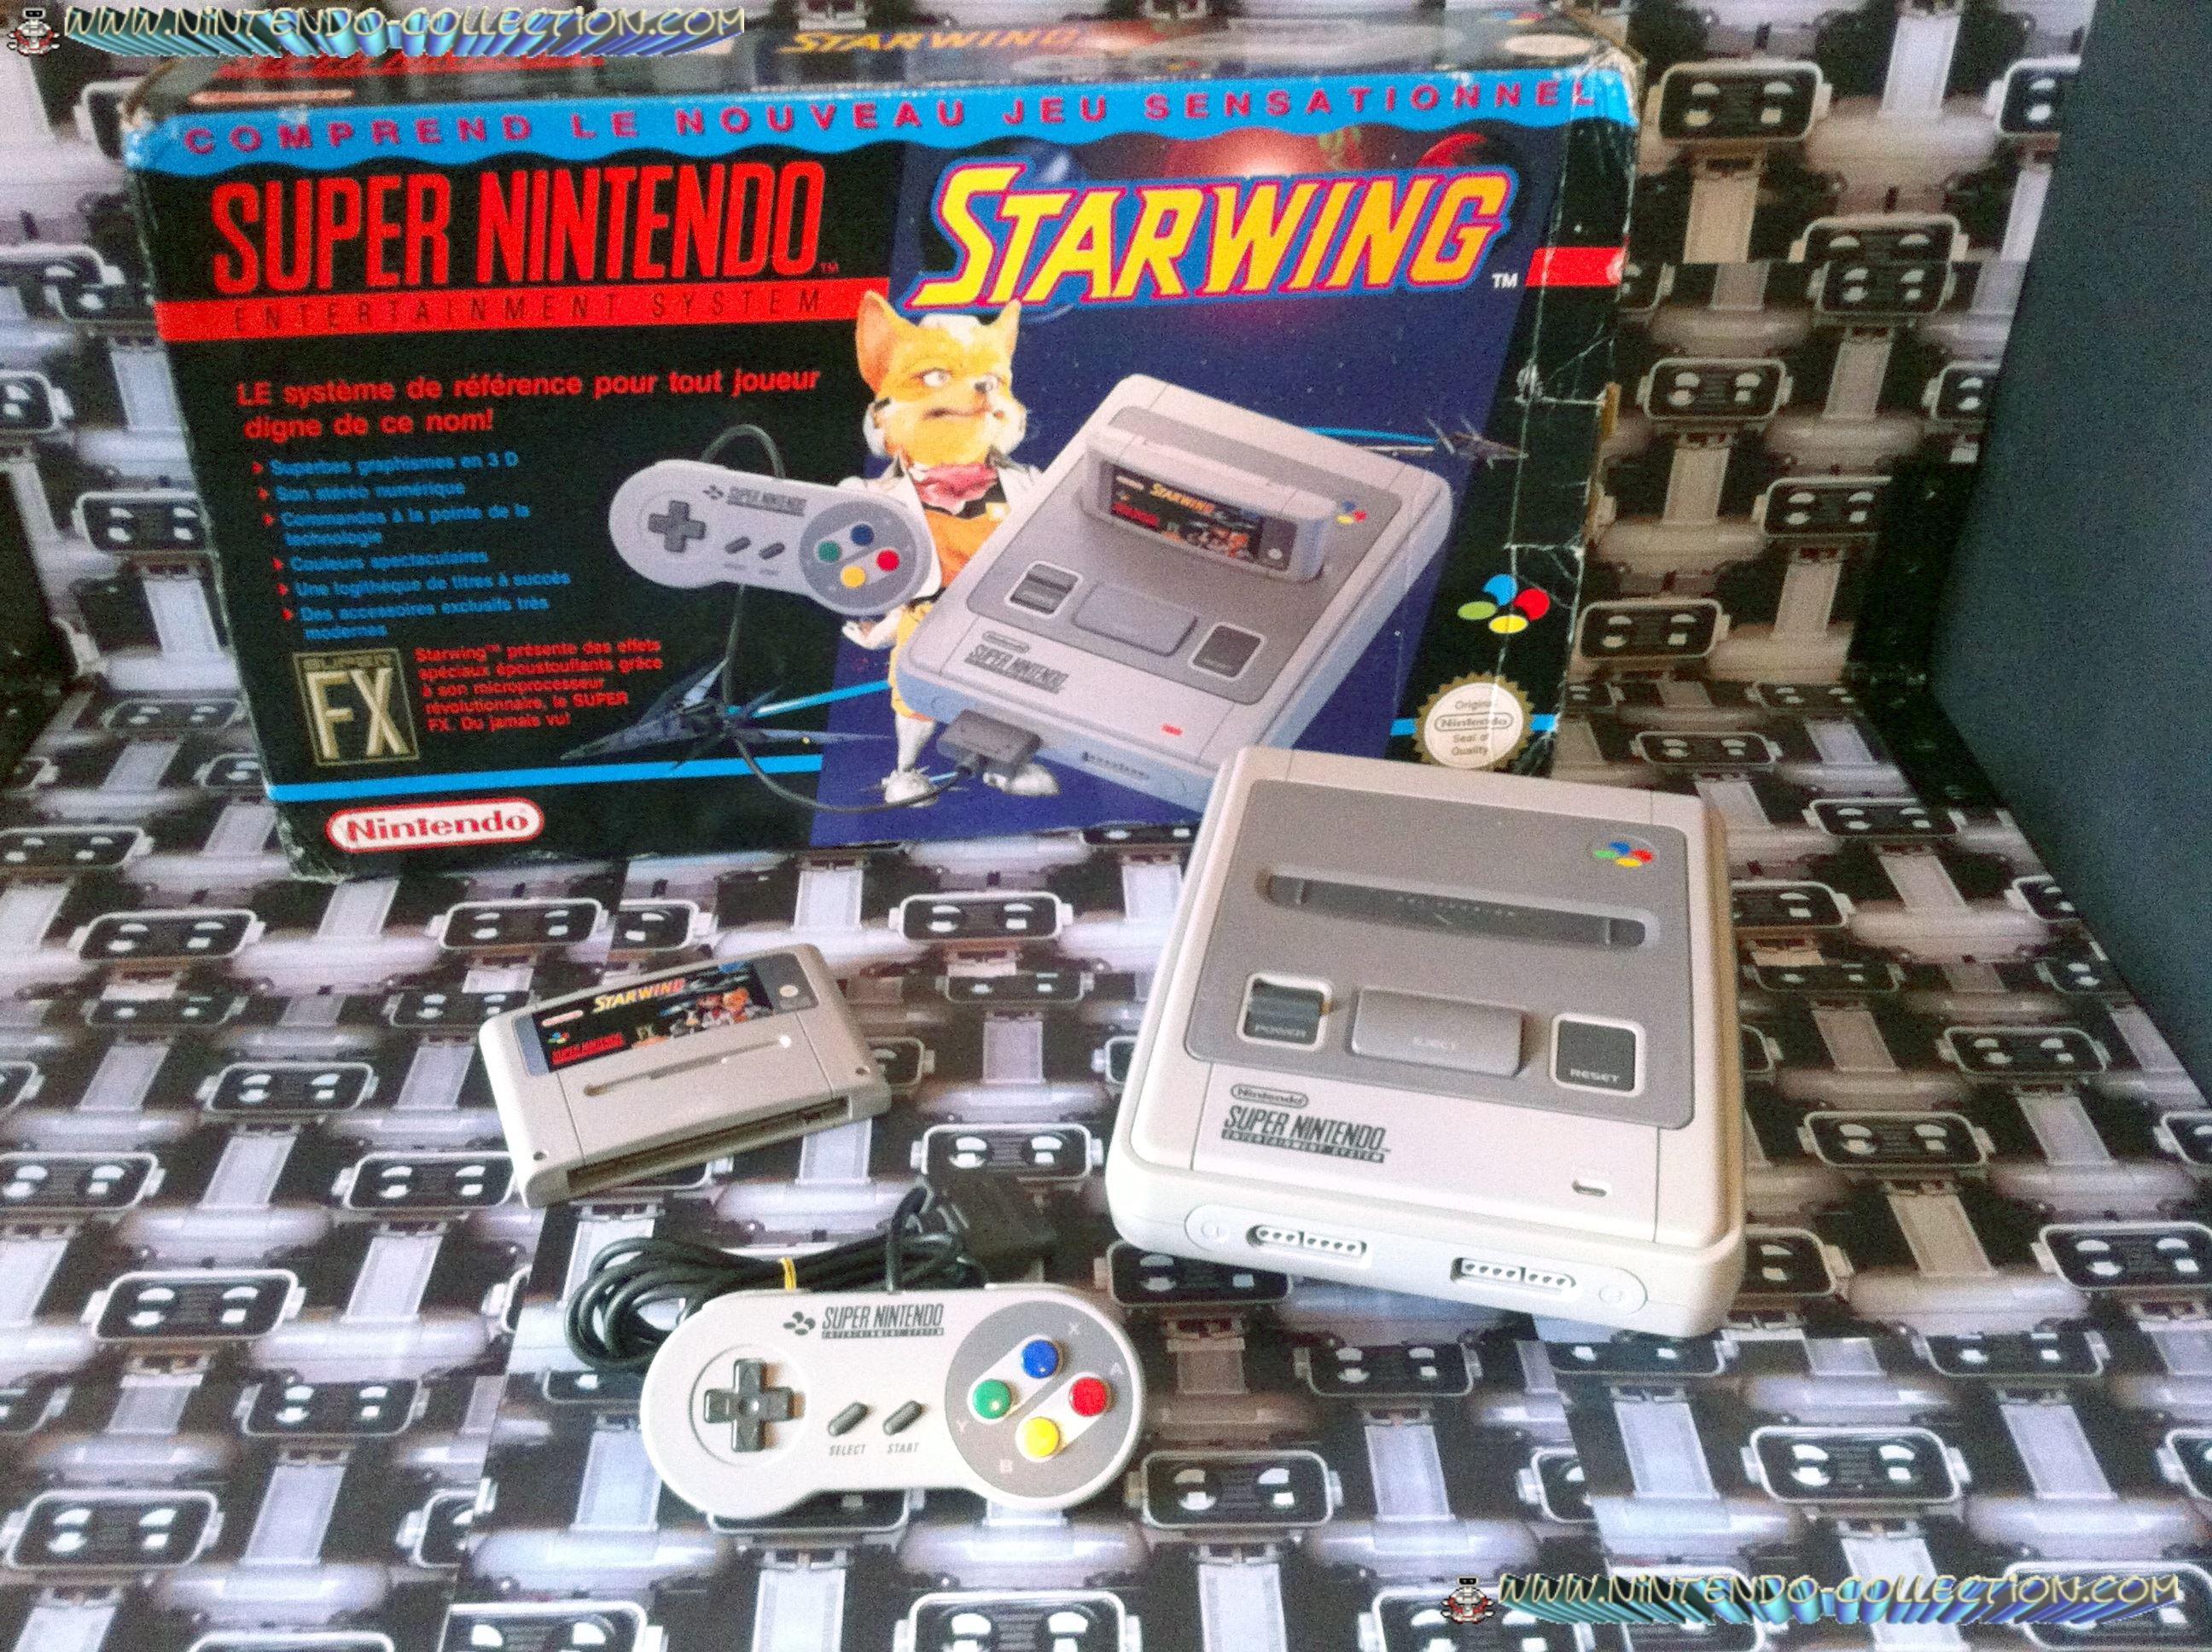 www.nintendo-collection.com - Super Nintendo Super Famicom Super Nes Pack Starwing